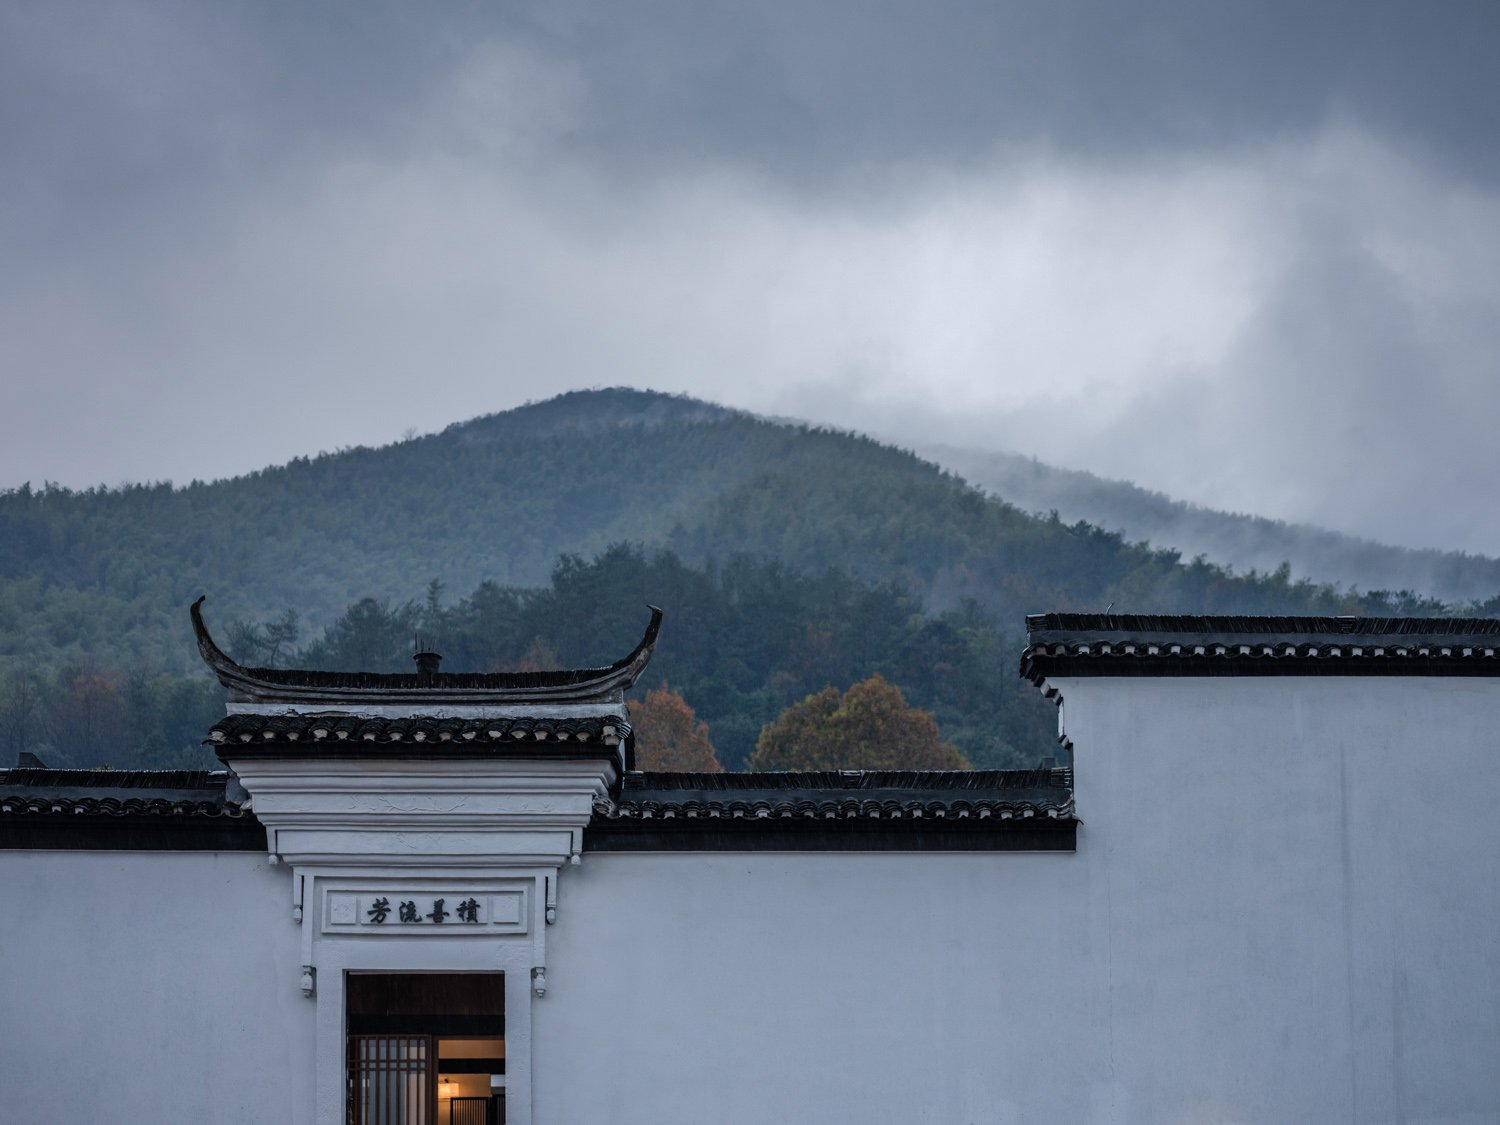 Huizhou-style roof and wall are well preserved Fancy Image